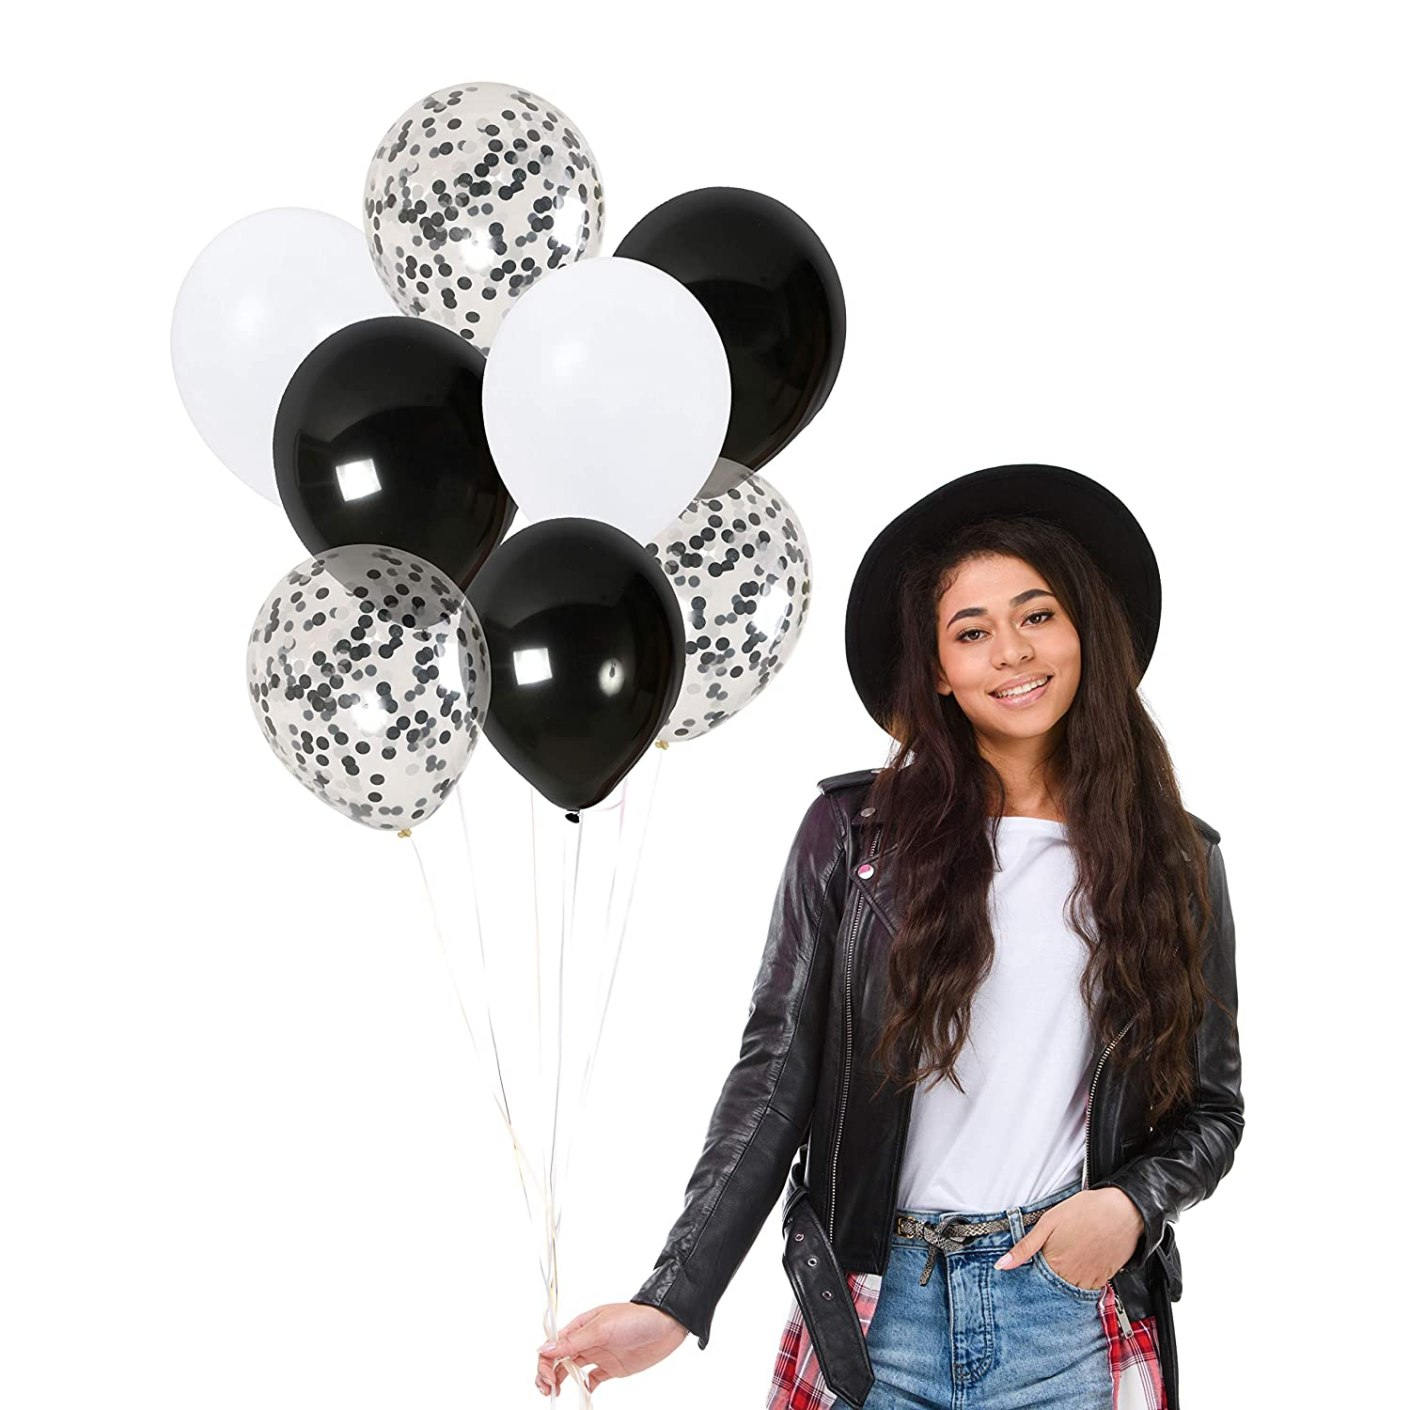 Globos color negrohttps://amzn.to/2EehxAr